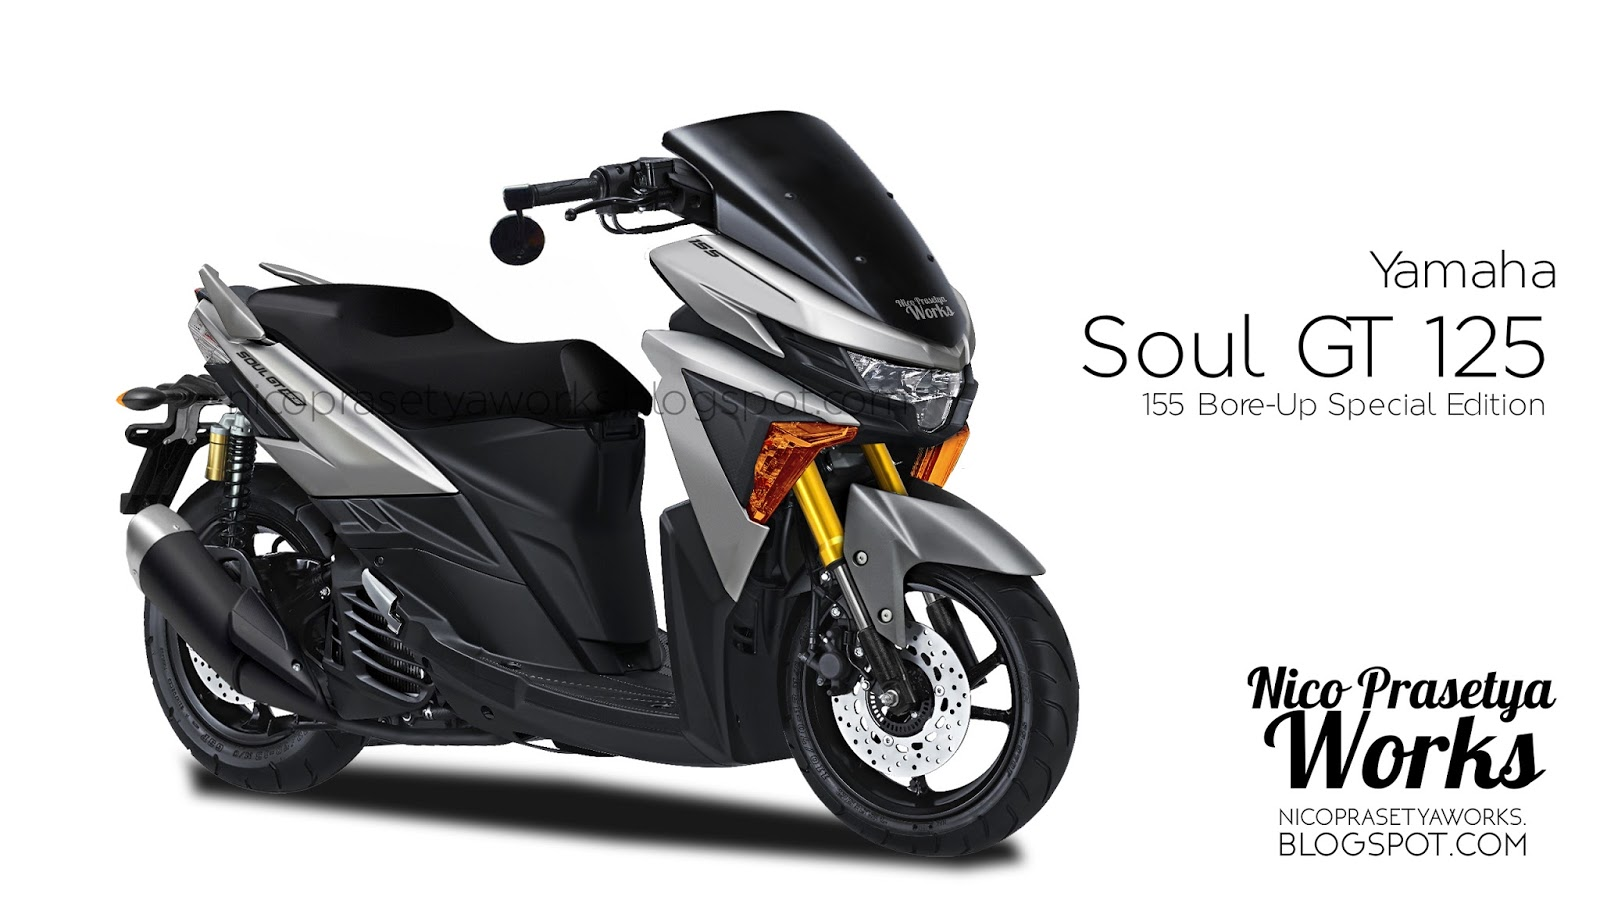 Yamaha Soul Gt 125 Special Edition